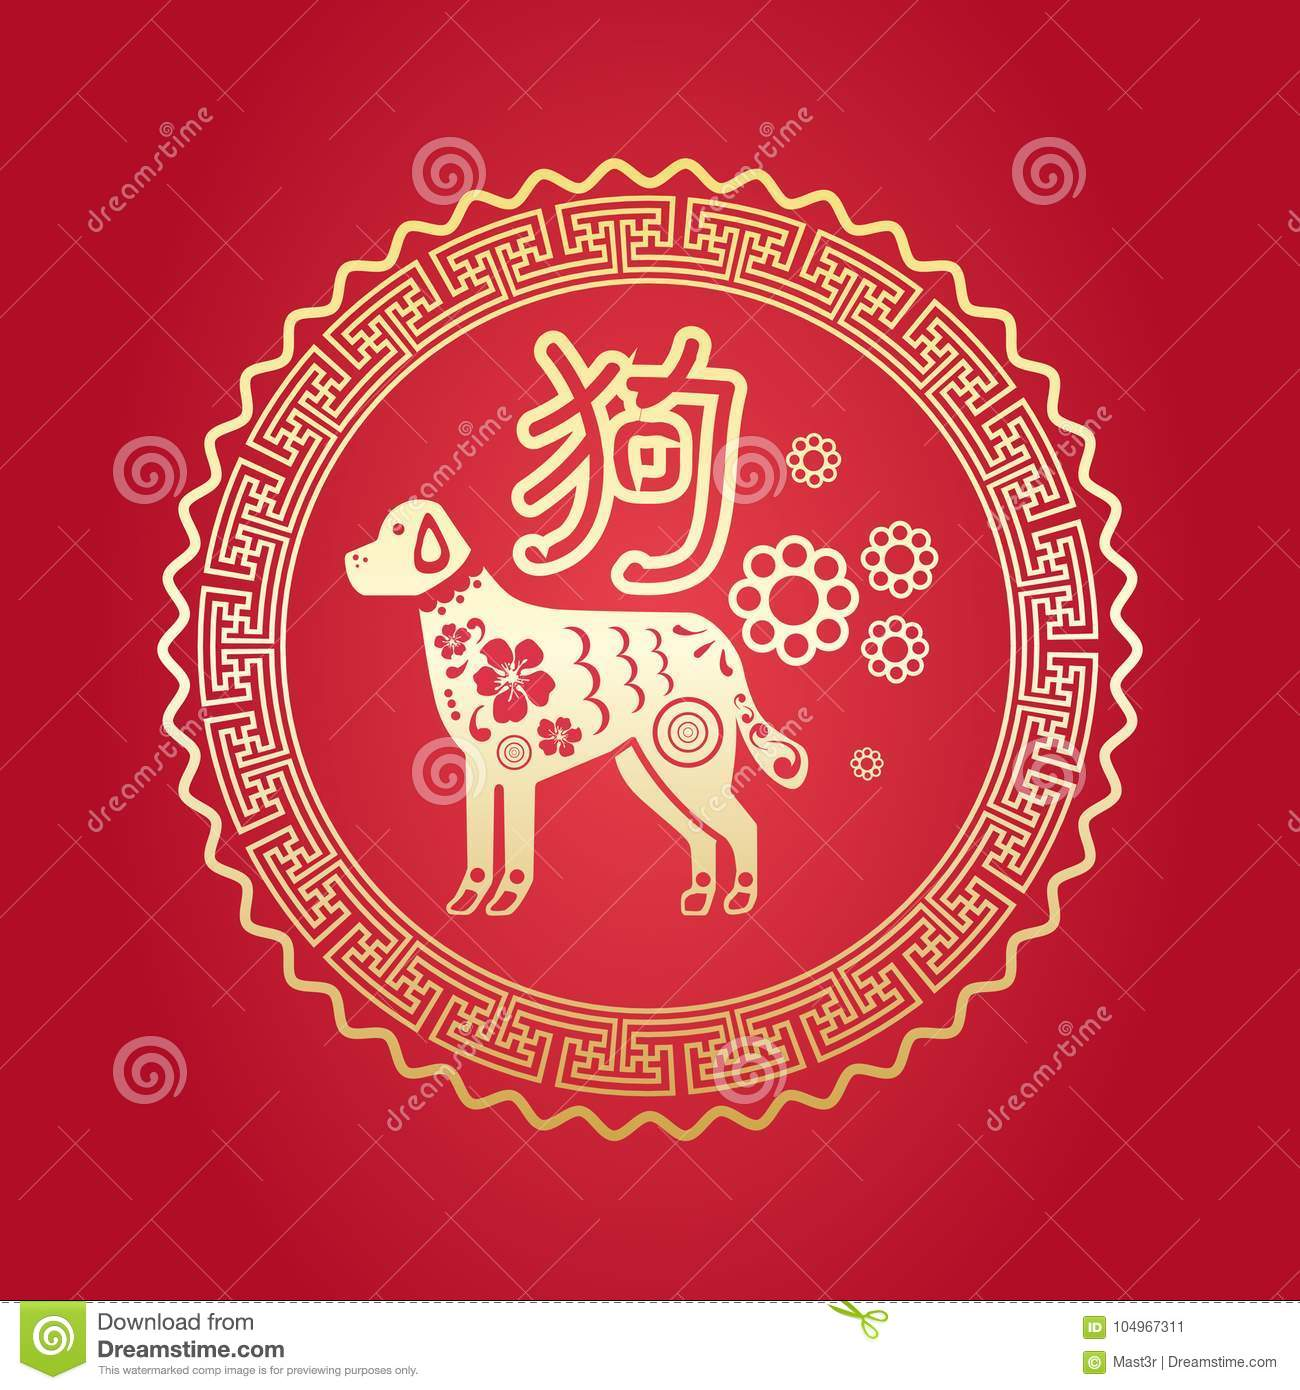 download 2018 chinese new year of dog paper cutting calligraphy on red background stock vector